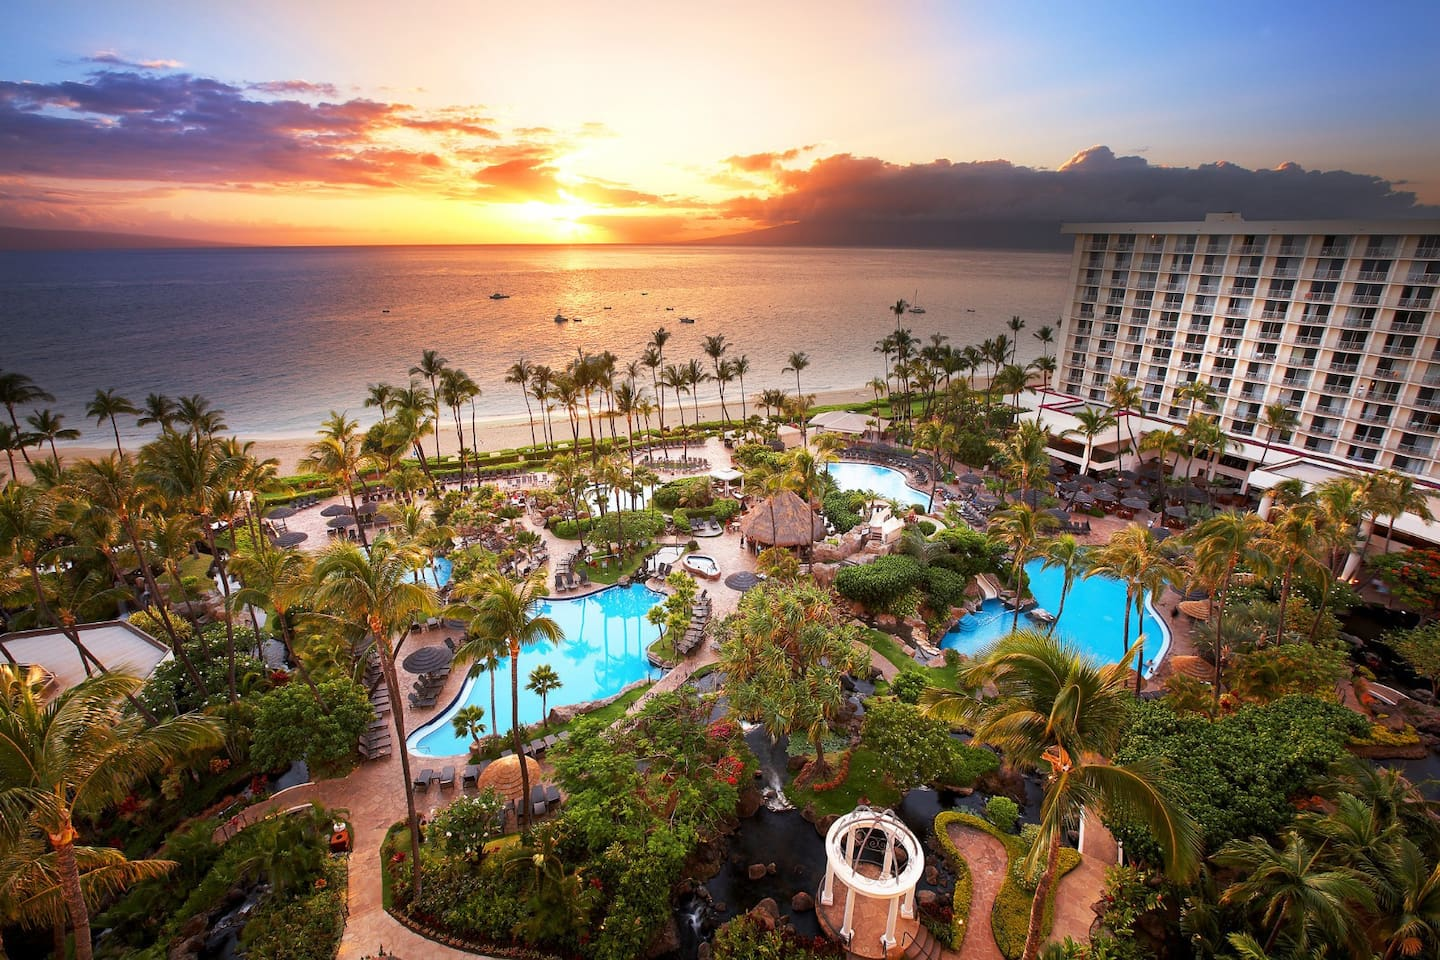 WESTIN Timeshare  Rental  A Resort Villa By the Beach - 1 BdRm, Full Kitchen, Up to 5: Available 4/14 to 4/21/2017